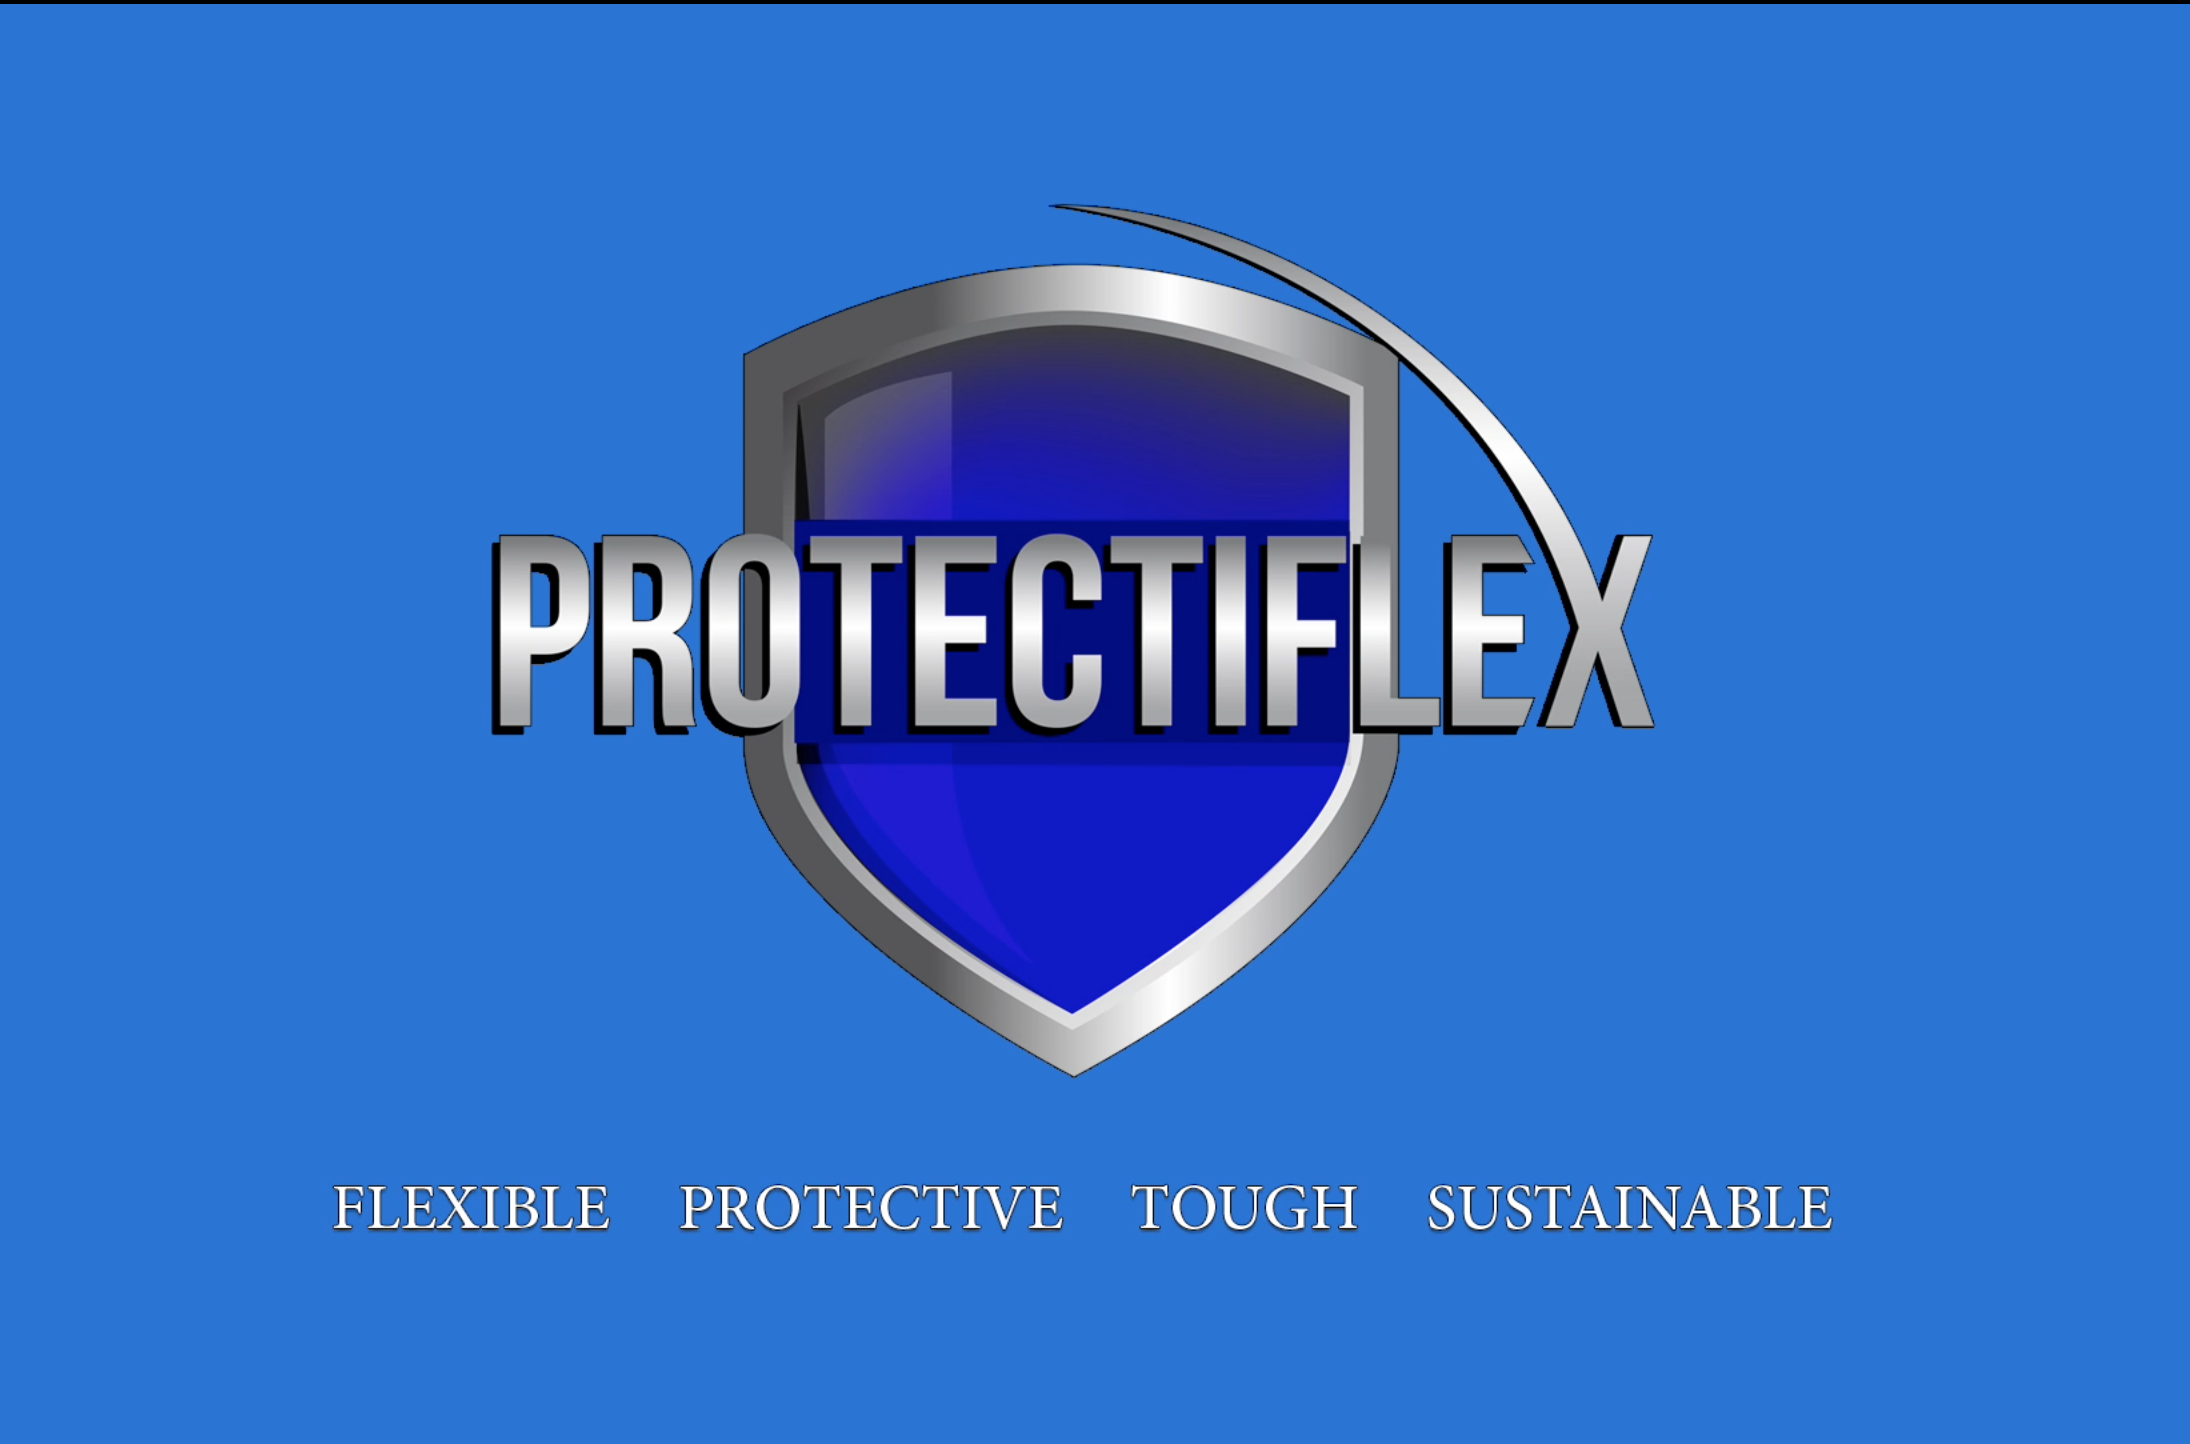 Protectiflex screen shot with properties.png